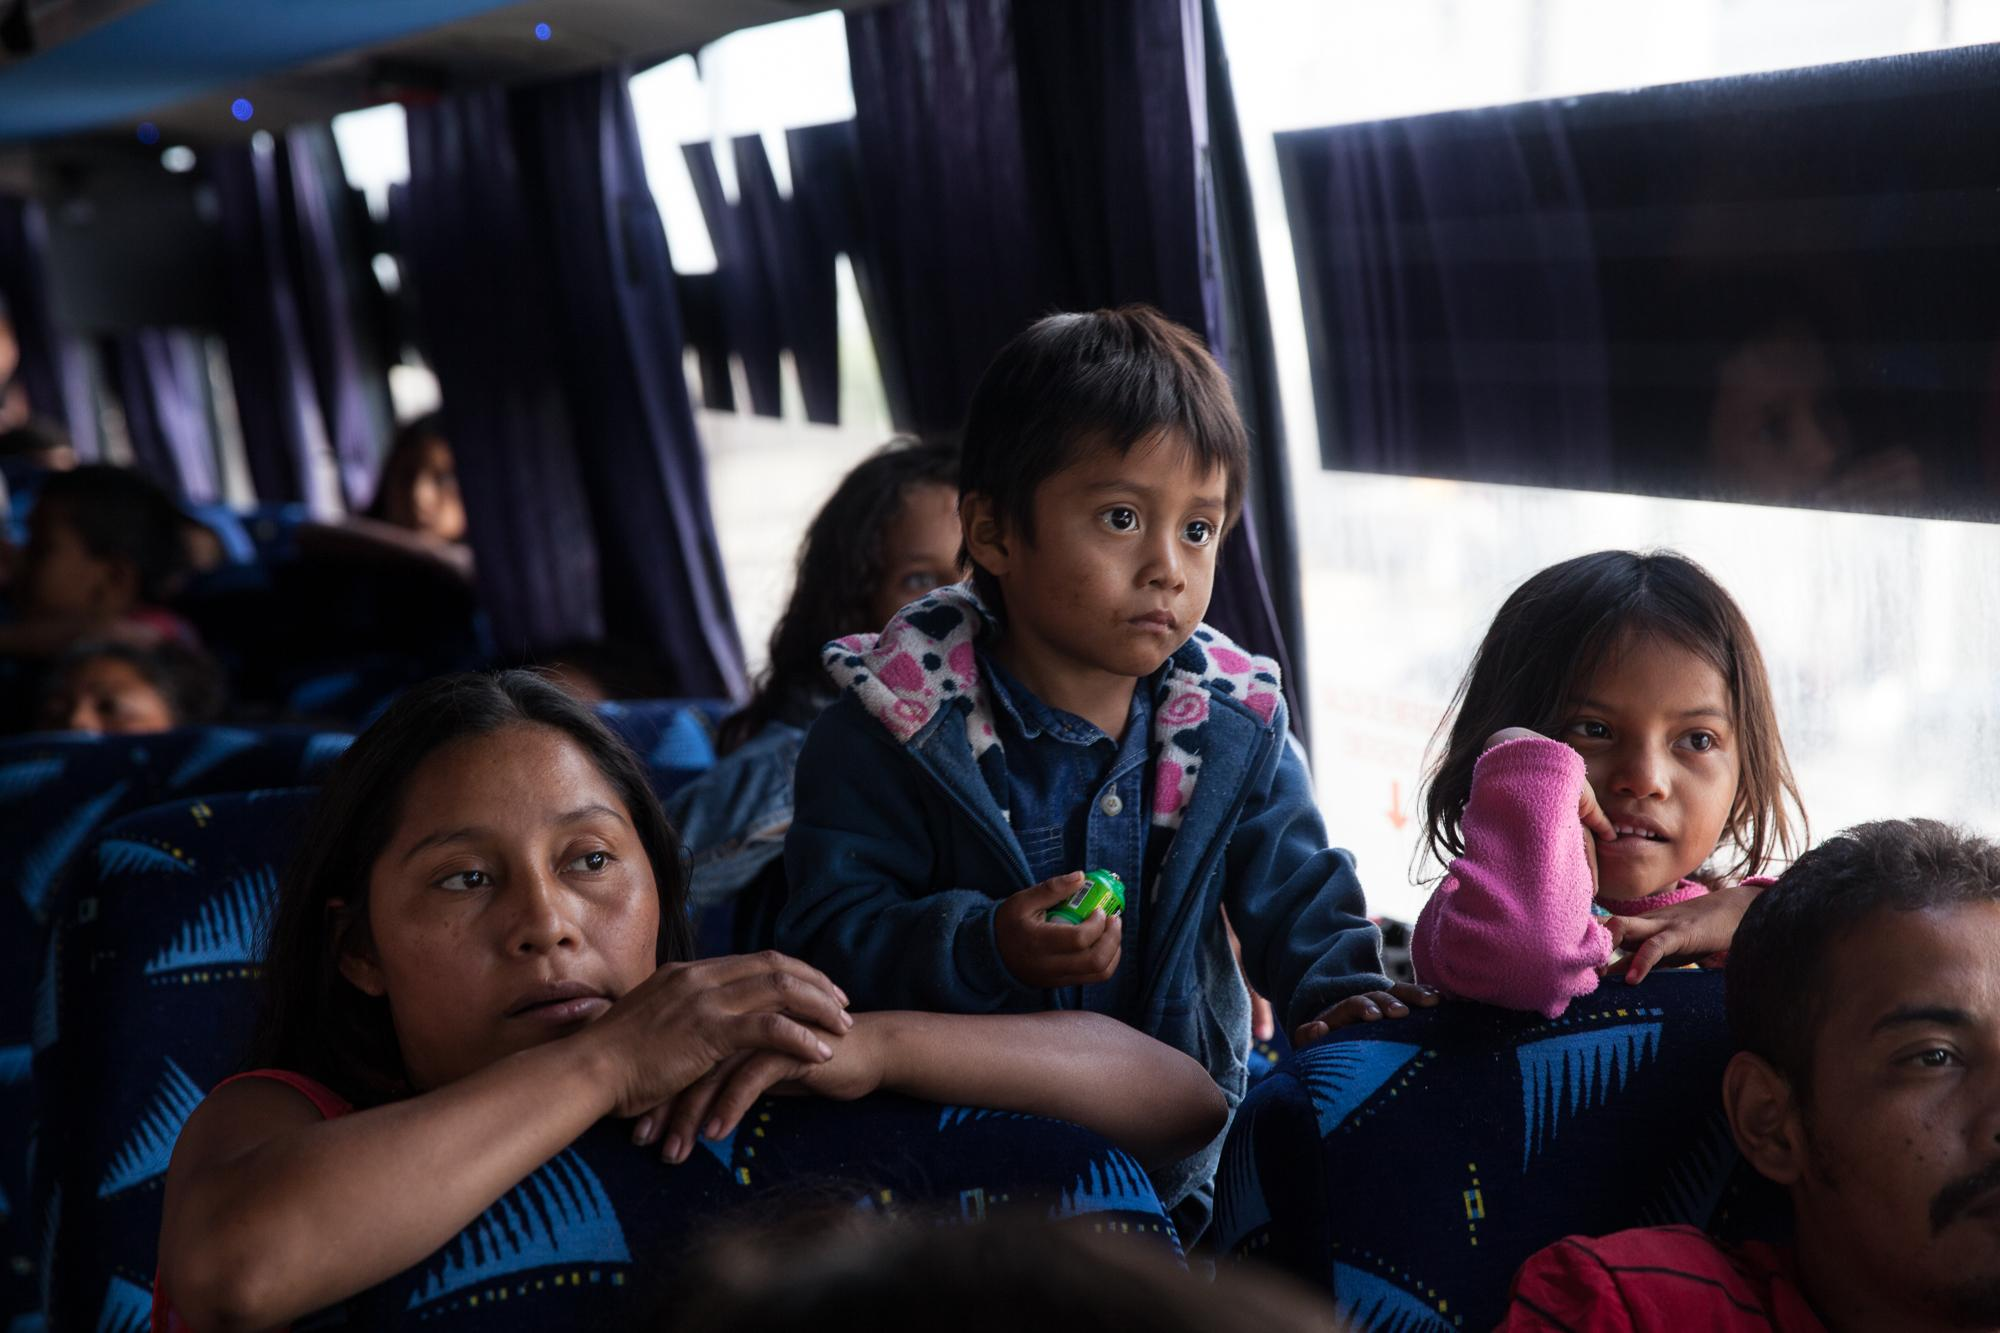 The caravan started on March 25th in the Mexican city of Tapachula, near the Guatemalan border, and traveled across Mexico. Mostly women and children stopped in Mexicali for two hours and got back the bus to make their way to Tijuana, MX, on April 24, 2018.